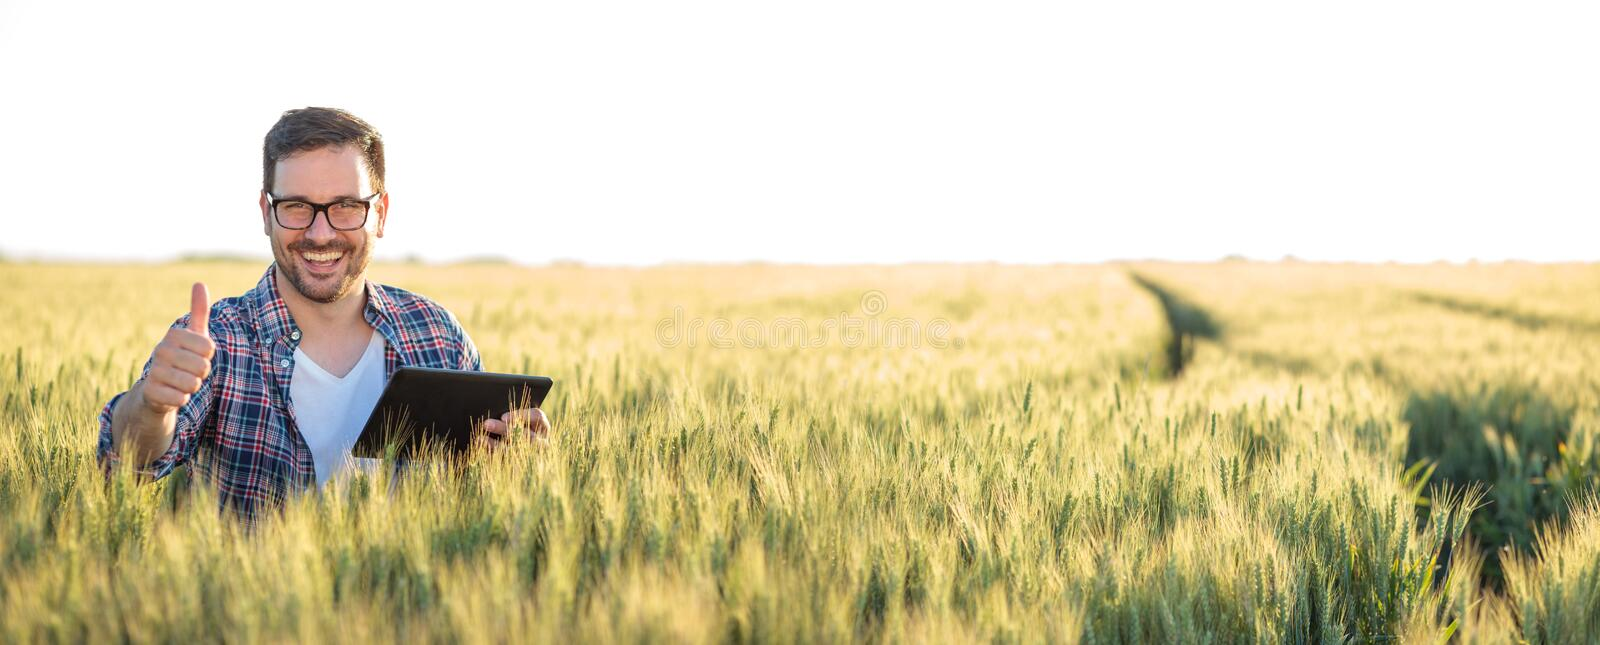 Smiling happy young farmer or agronomist using a tablet in a wheat field. Showing thumbs-up and looking directly at camera royalty free stock photos